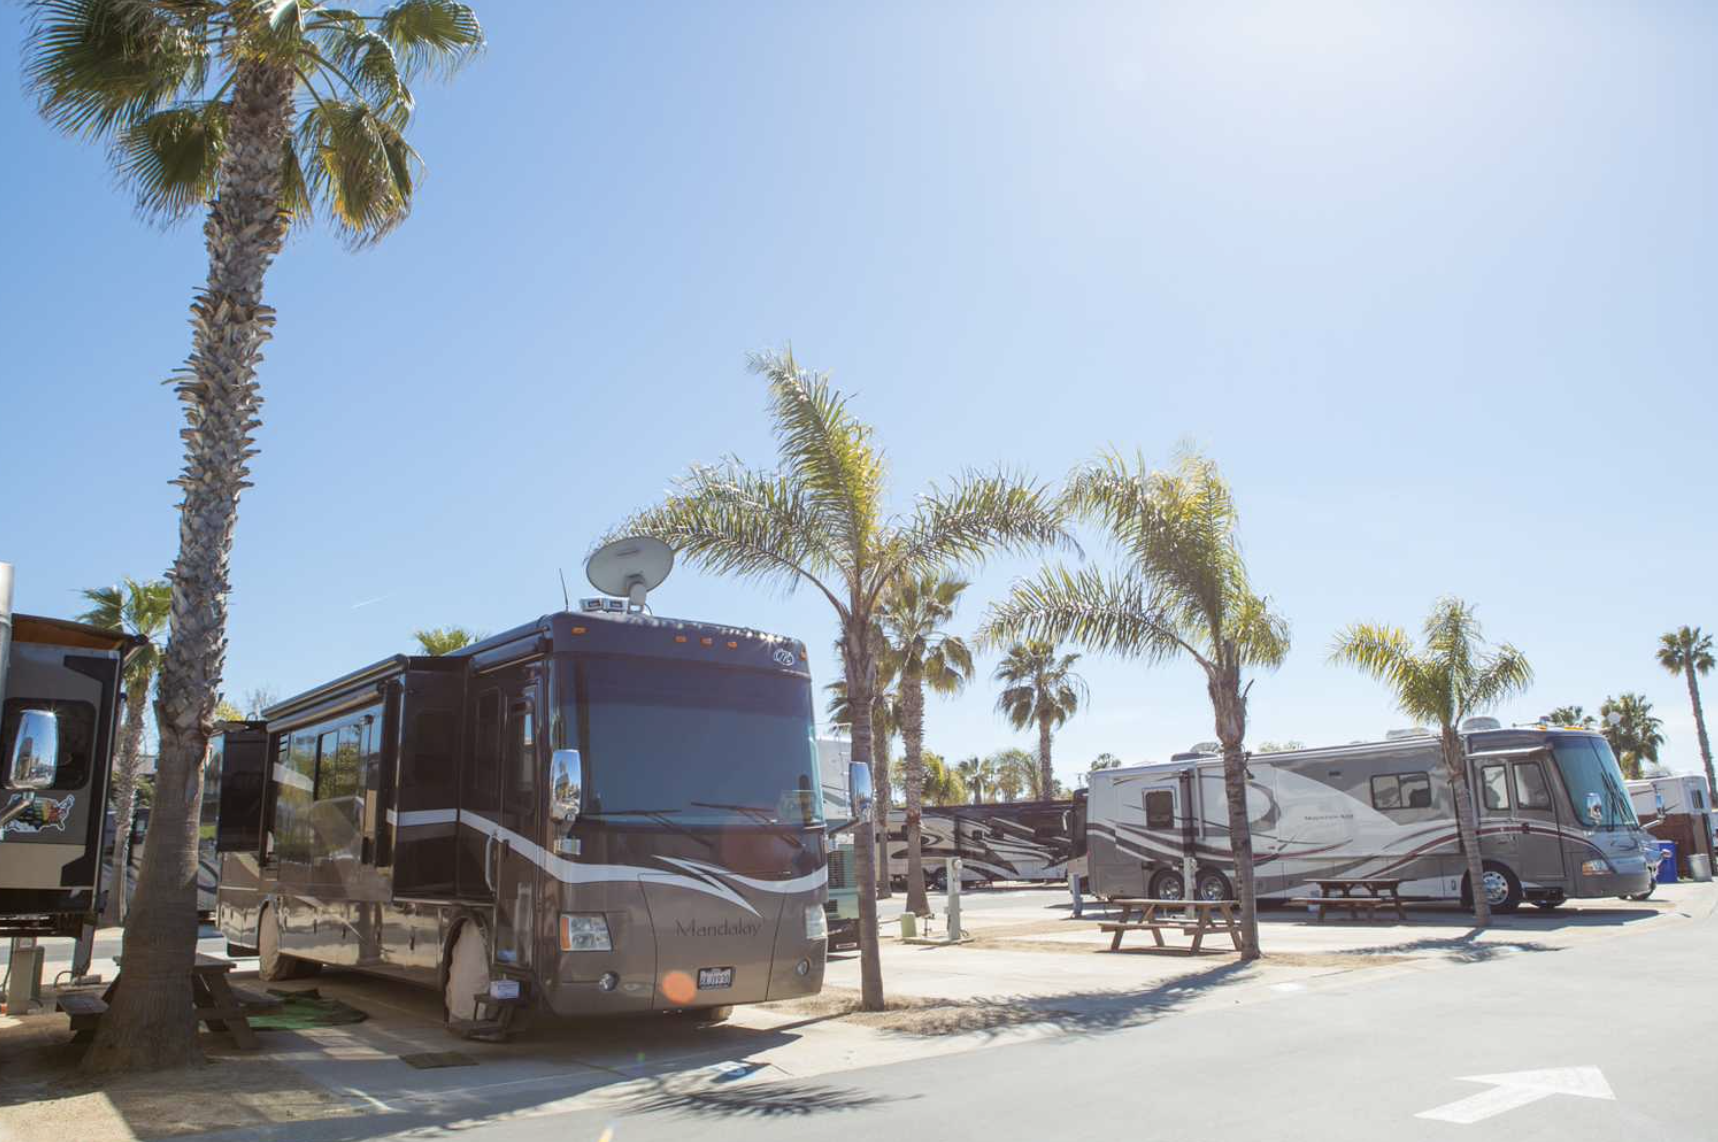 Campground in California with RVs parked between palm trees.